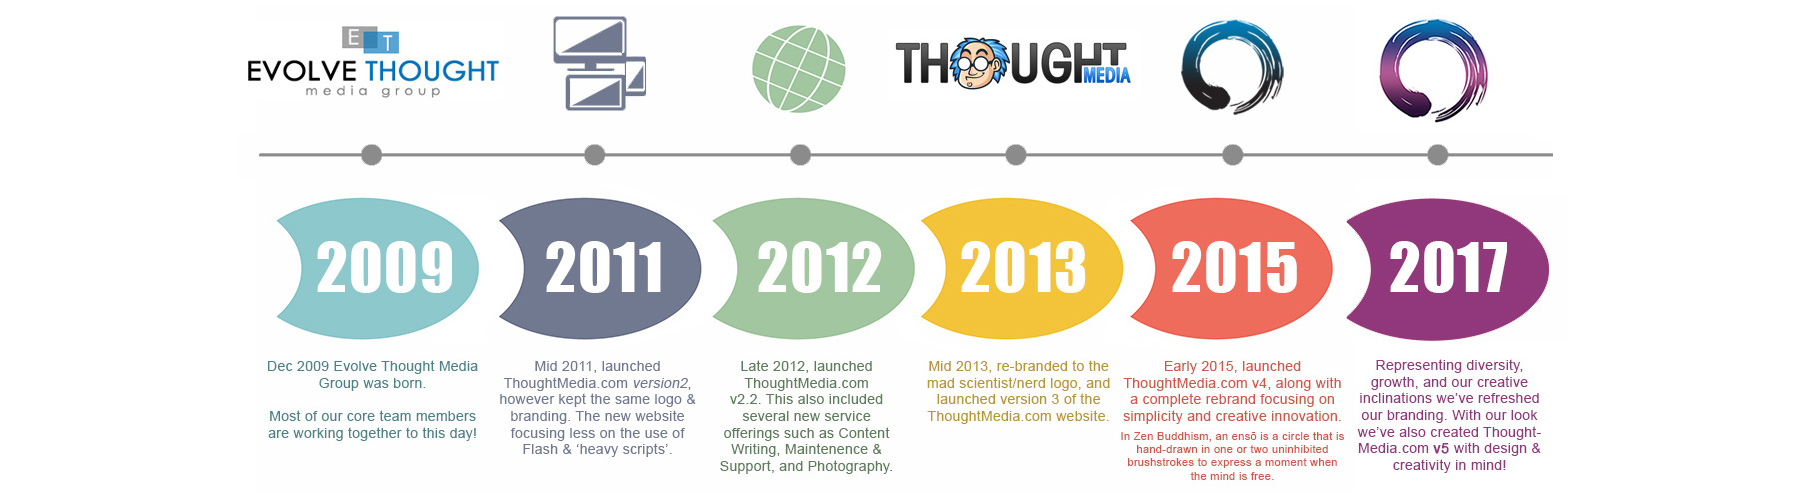 Thought Media Brand Evolution